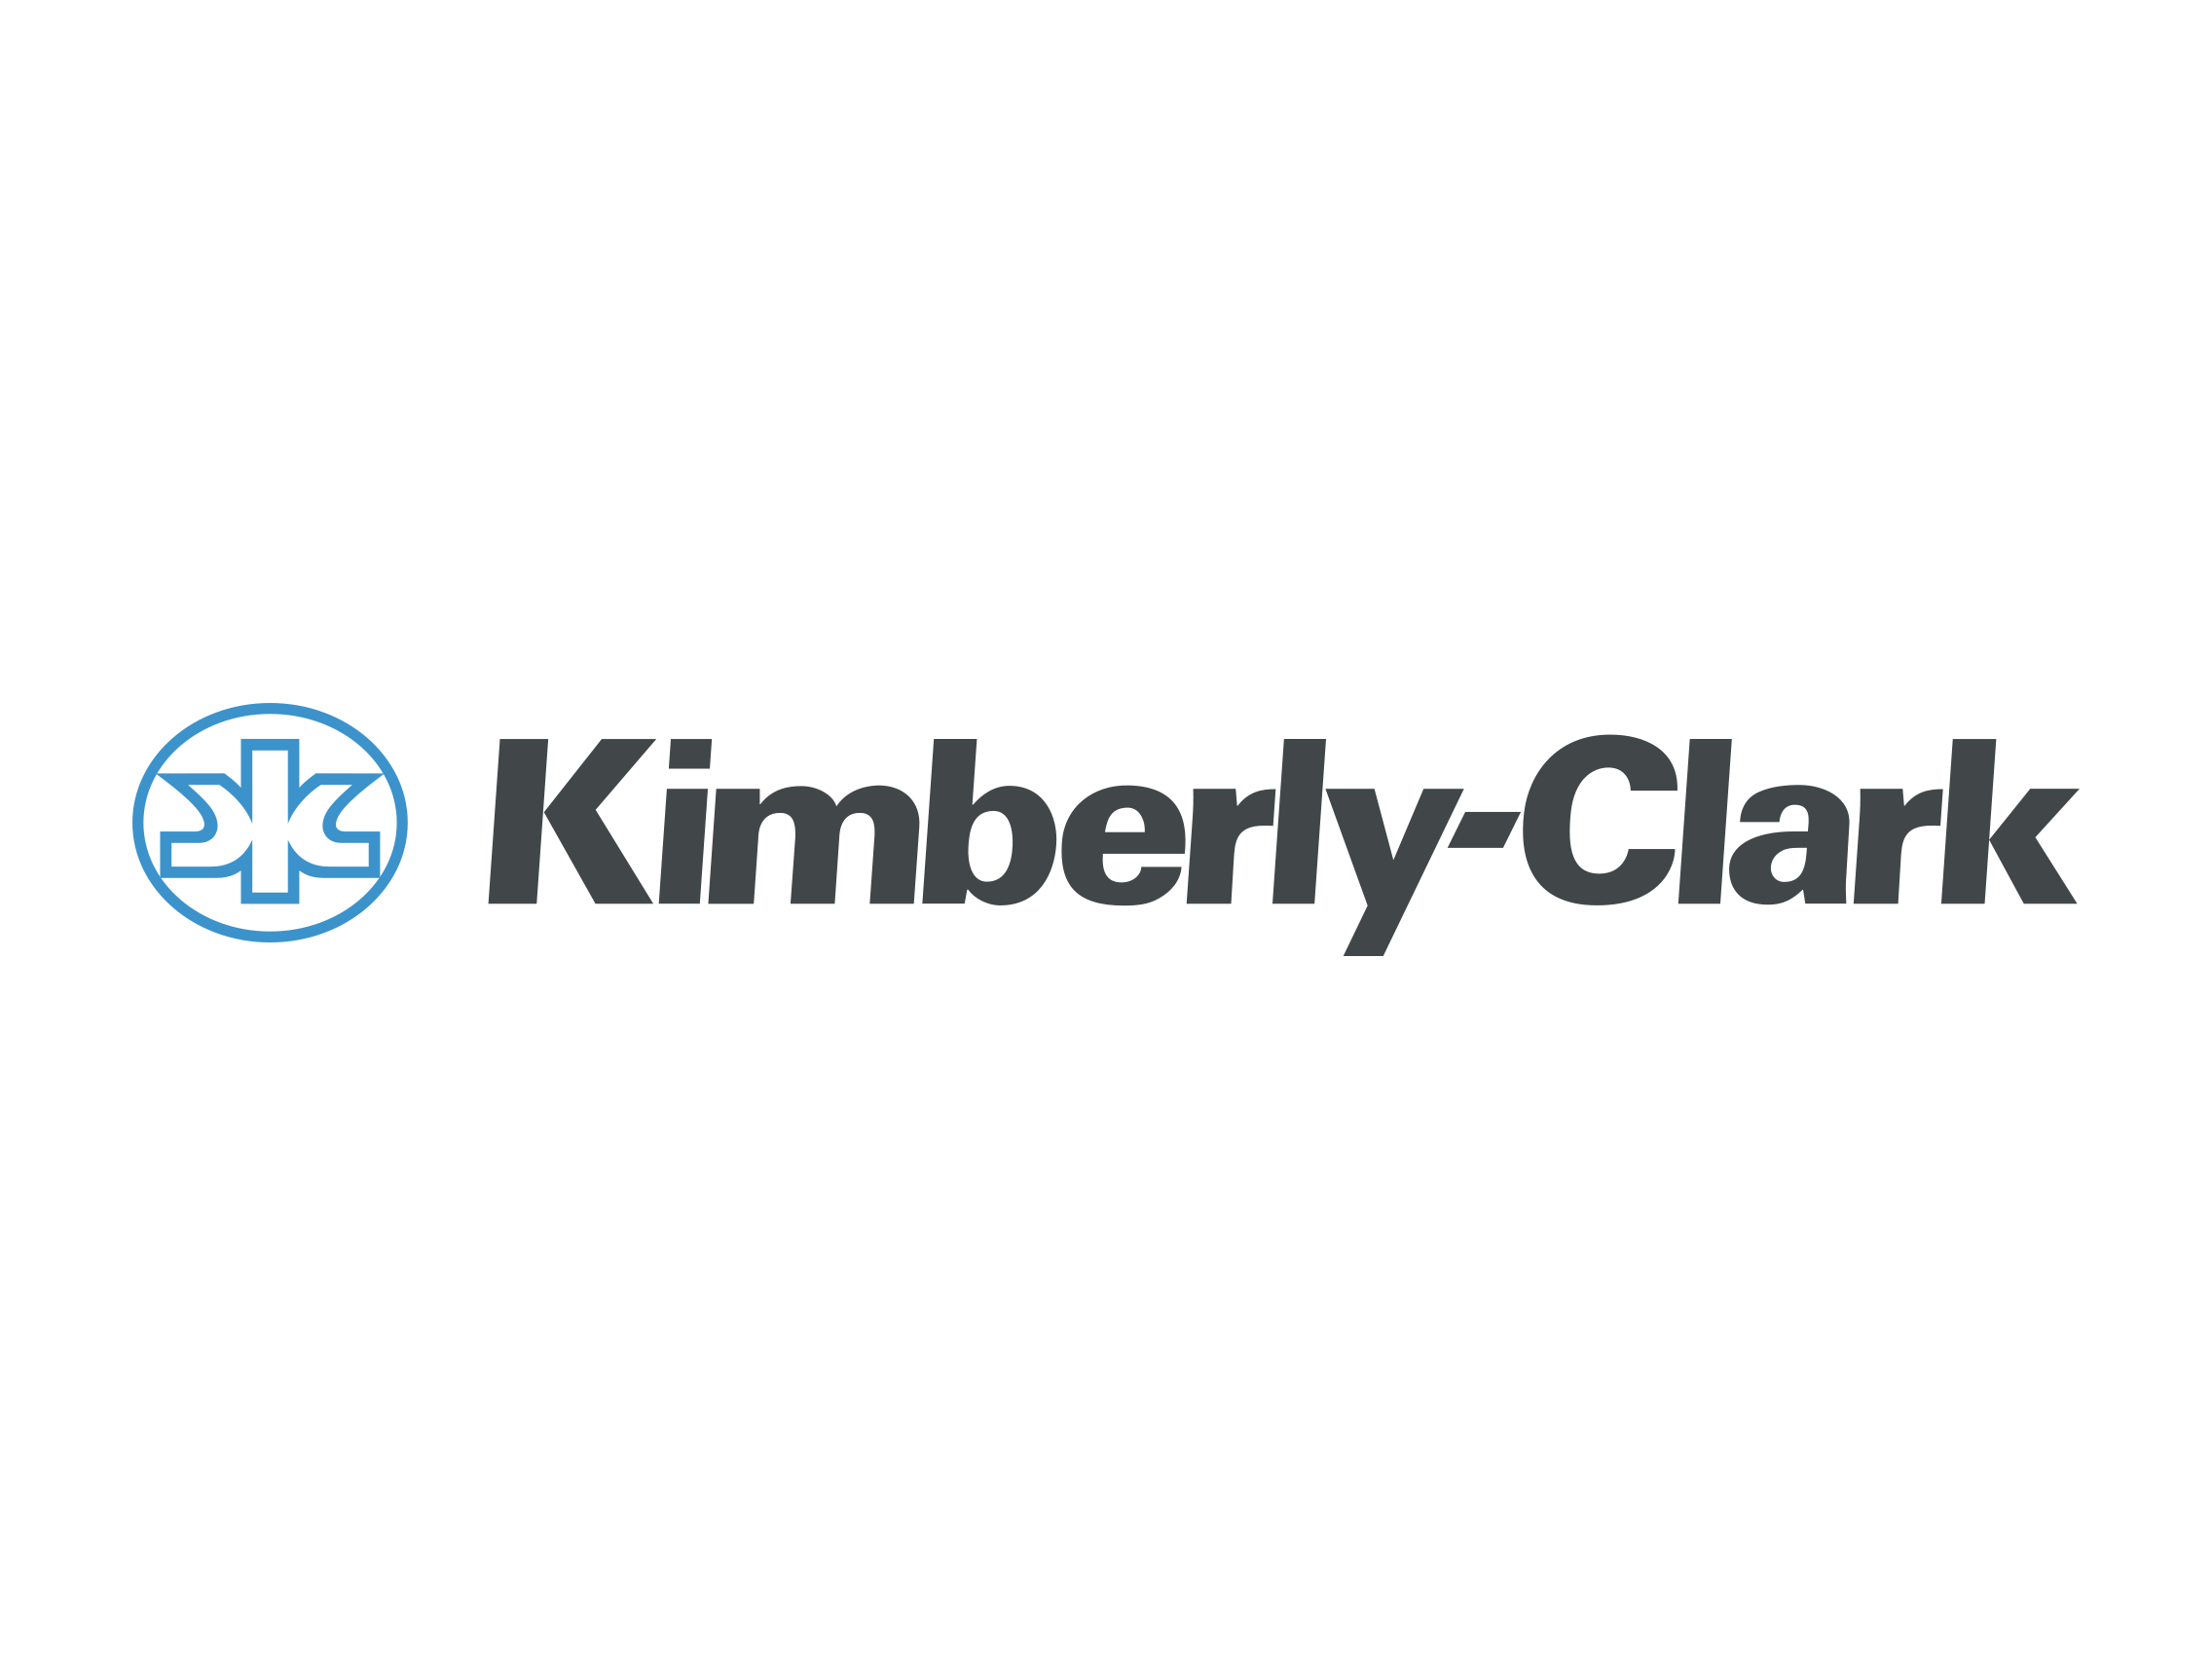 kimberly clark creating winning culture Employee engagement is key to sustainable success july 5, 2012  the link between employee engagement and  to achieve company goals is the kimberly-clark.